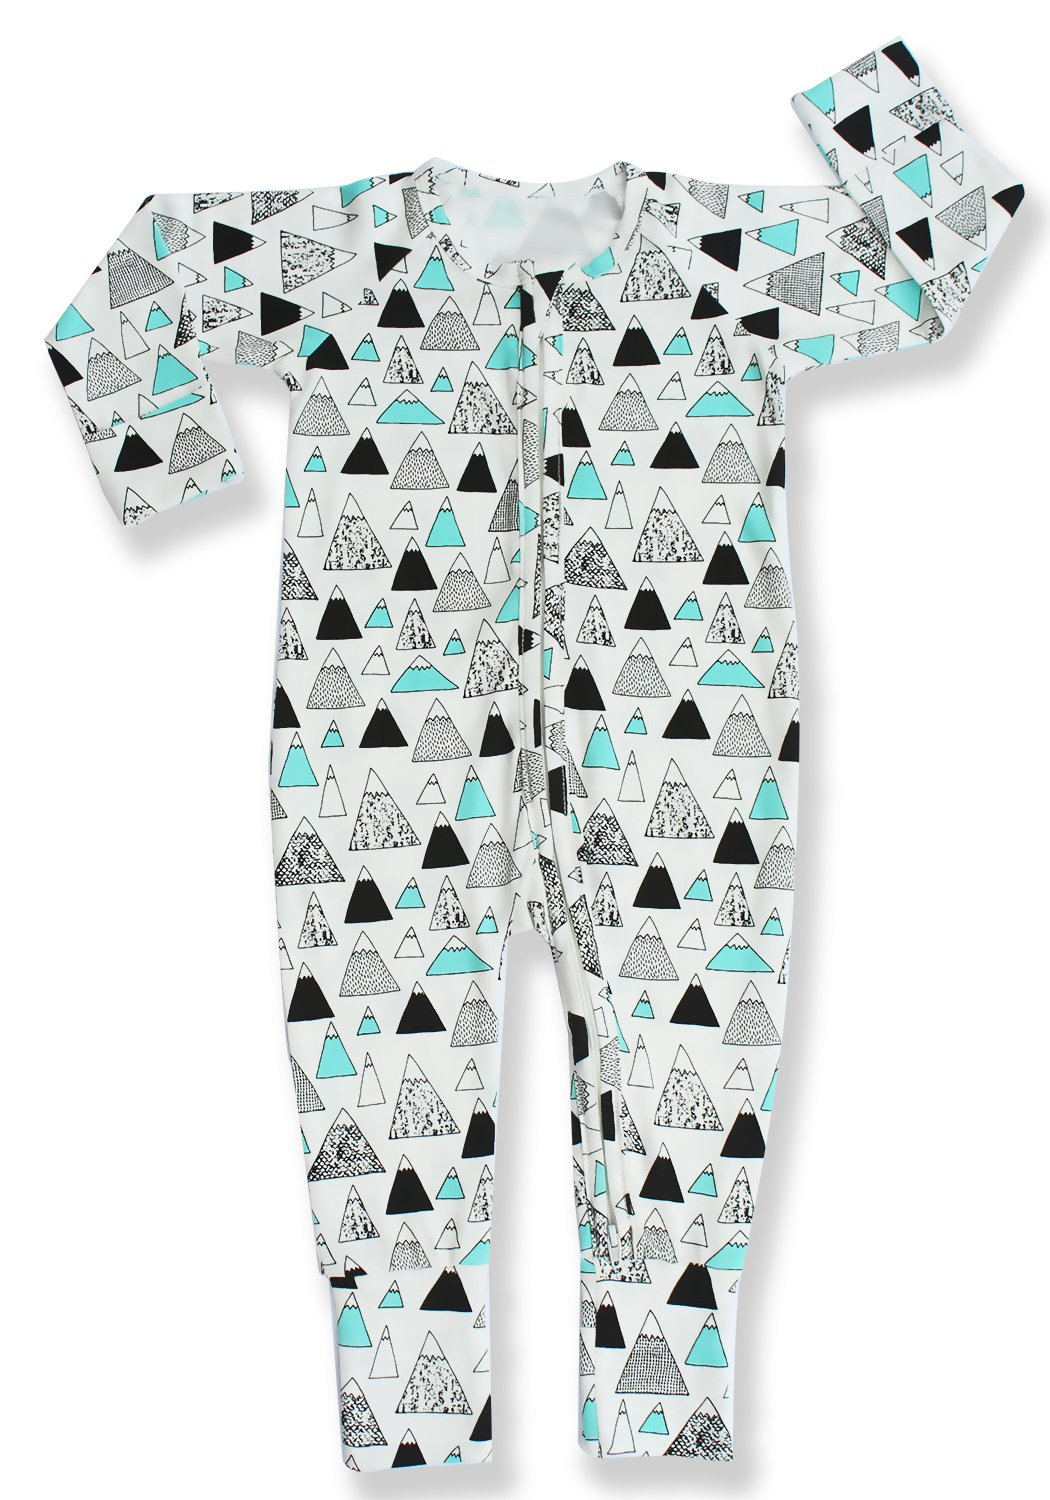 Pajammie Zipsuits Unisex Baby Bamboo and Organic Cotton Sleeper Footie Romper with 2-Way Zip (2T, Mountain Peaks)